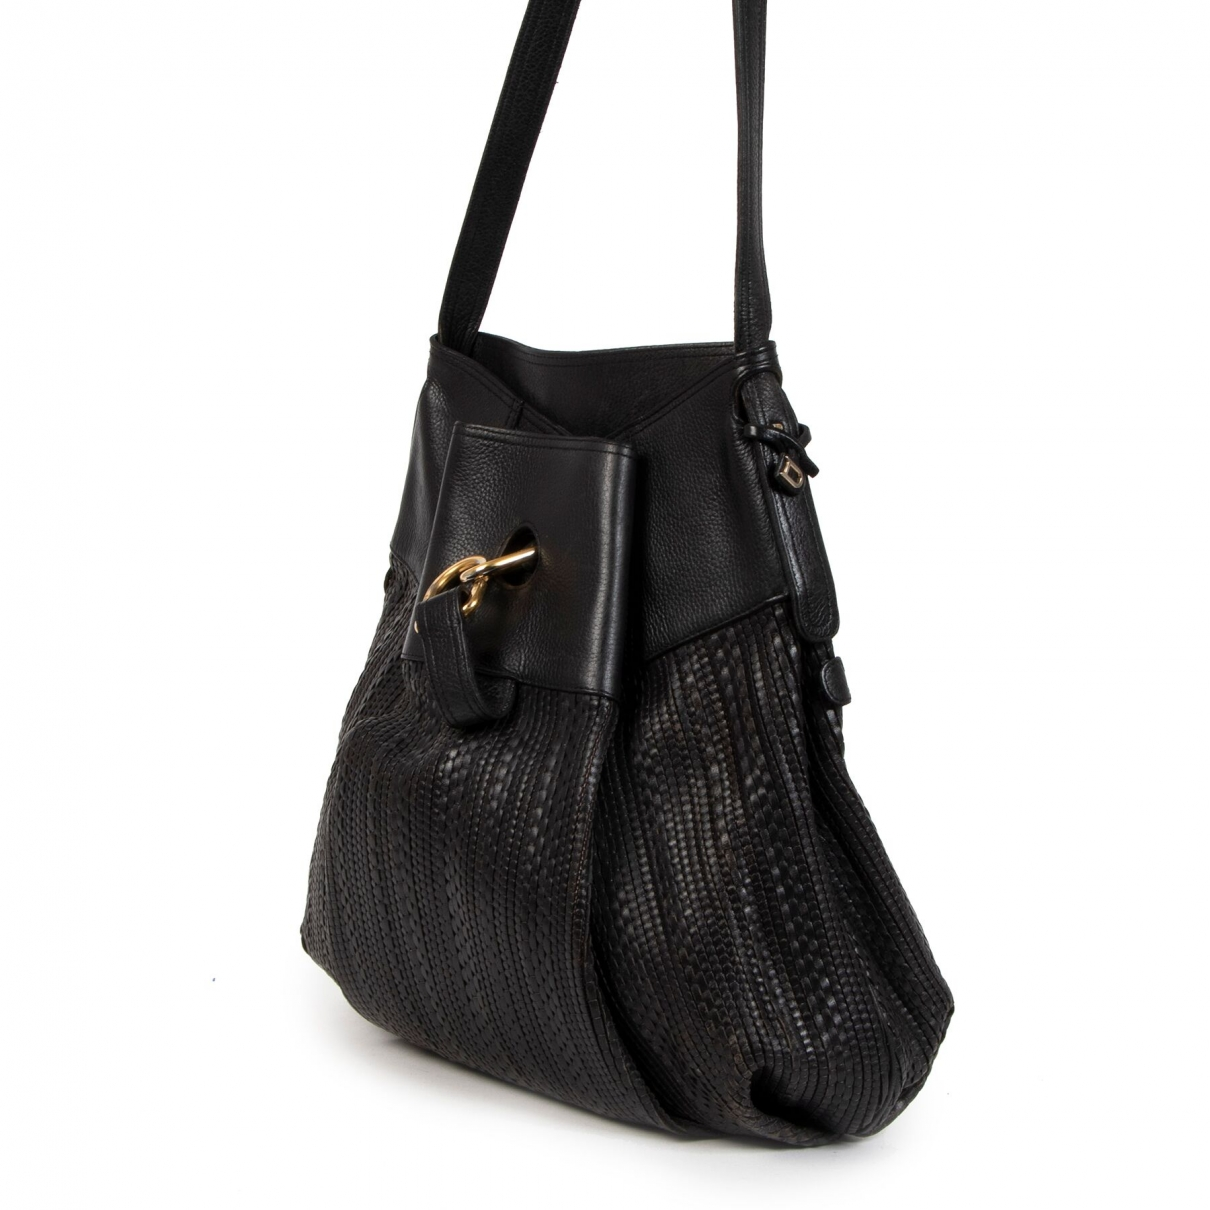 Delvaux \N Black Leather handbag for Women \N